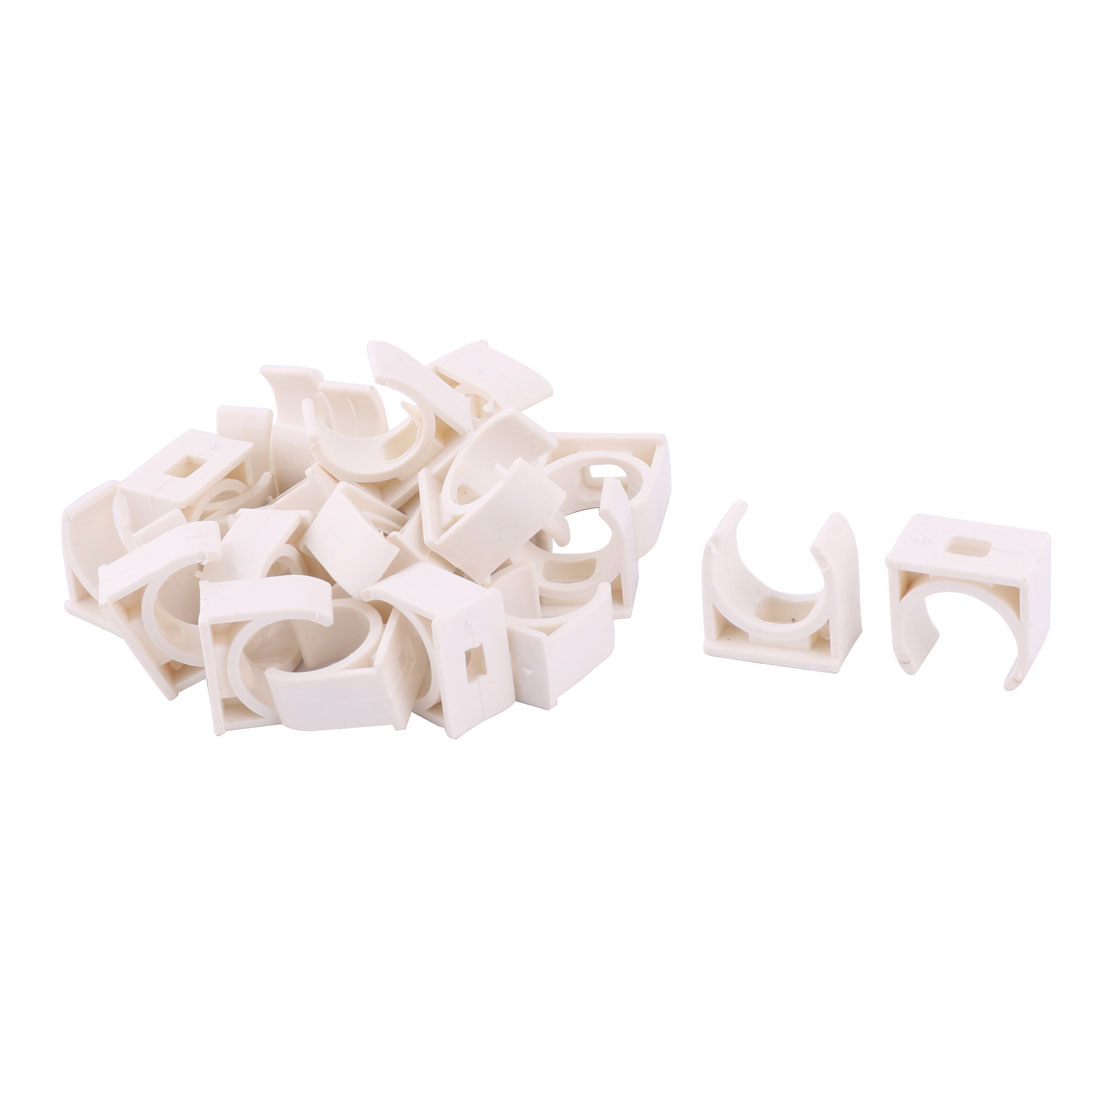 Home PVC U Shaped Water Supply Pipe Holder Stand Clamps White 20mm Dia 25pcs